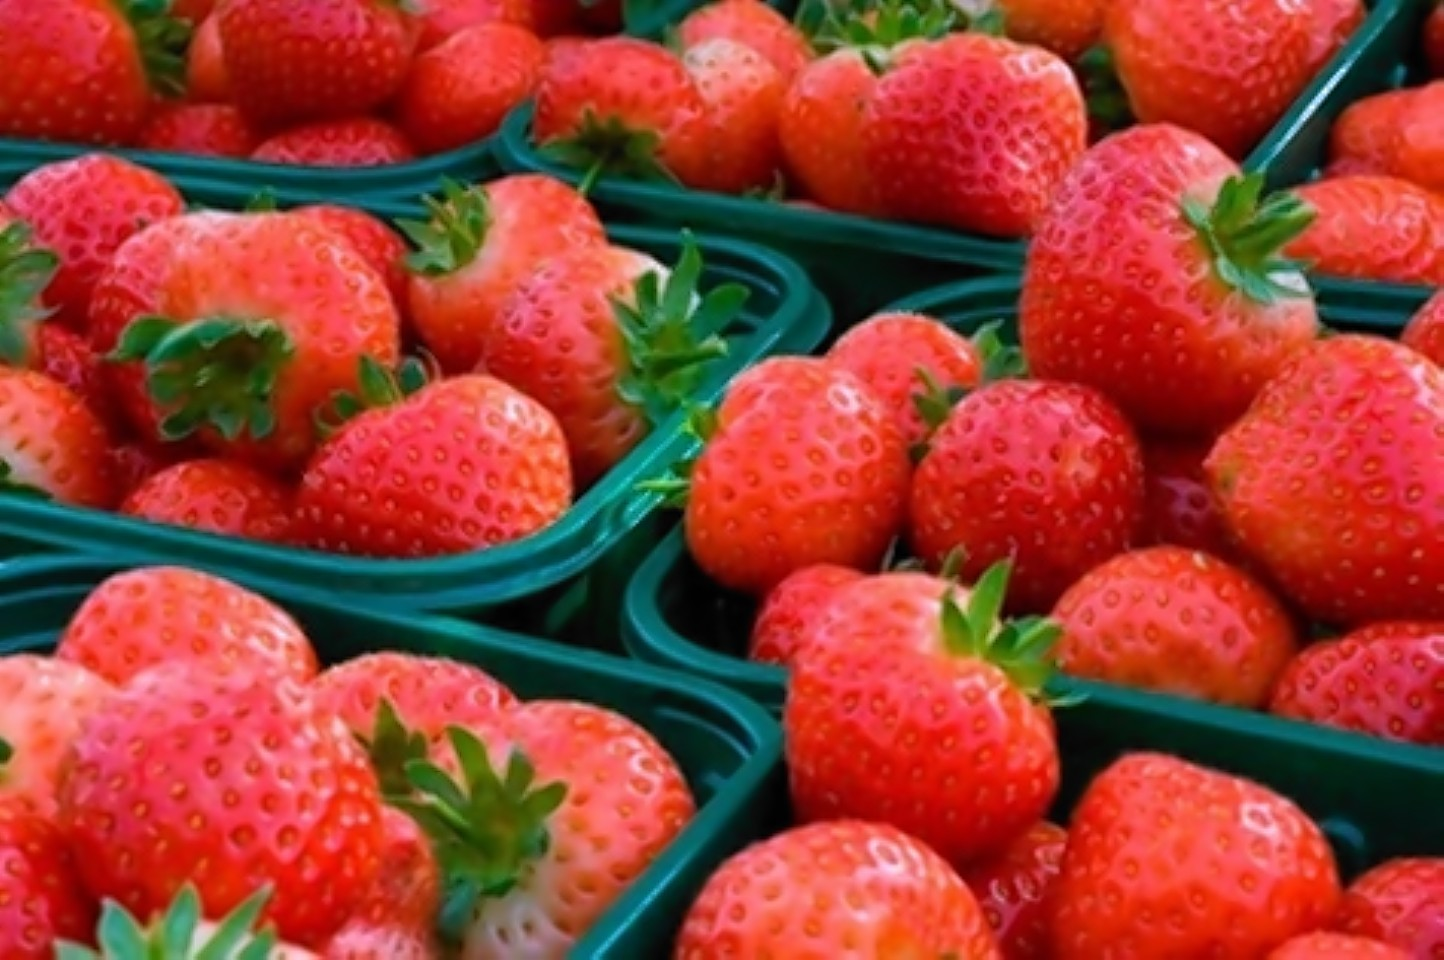 Many farmers in the north and north-east run pick your own soft fruit enterprises.